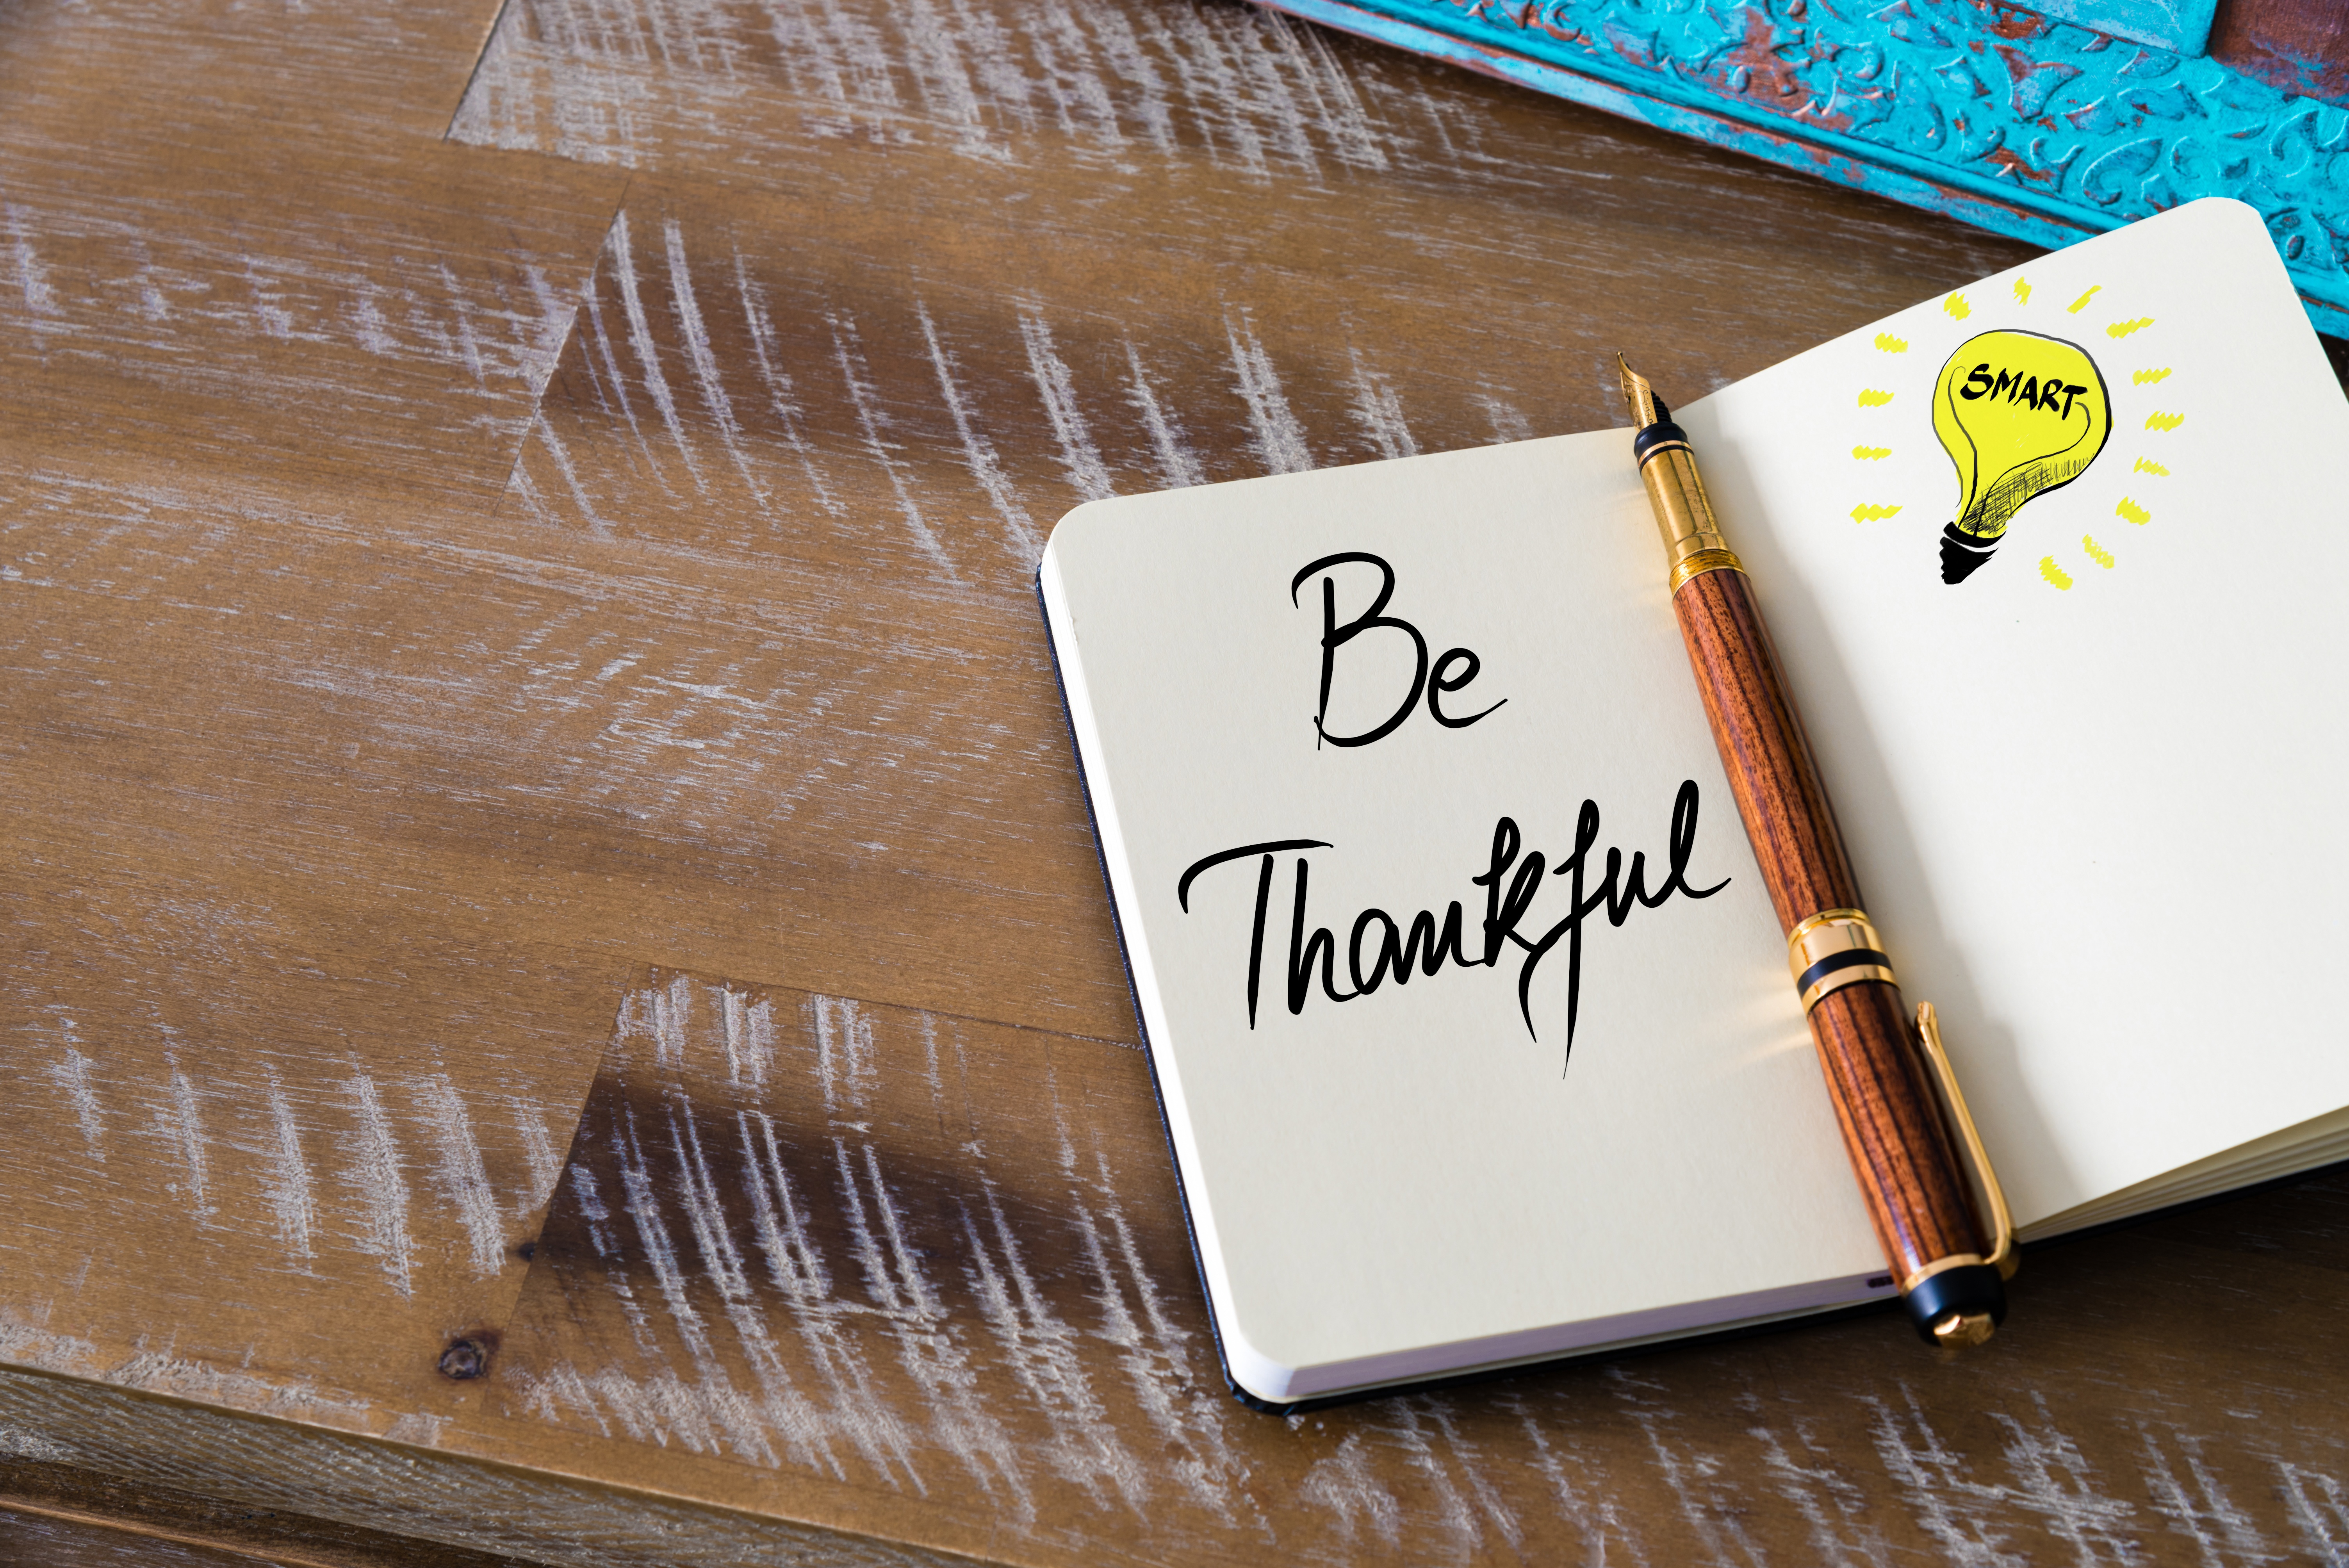 23 Quotes to Inspire an Attitude of Gratitude in Your Sales Approach